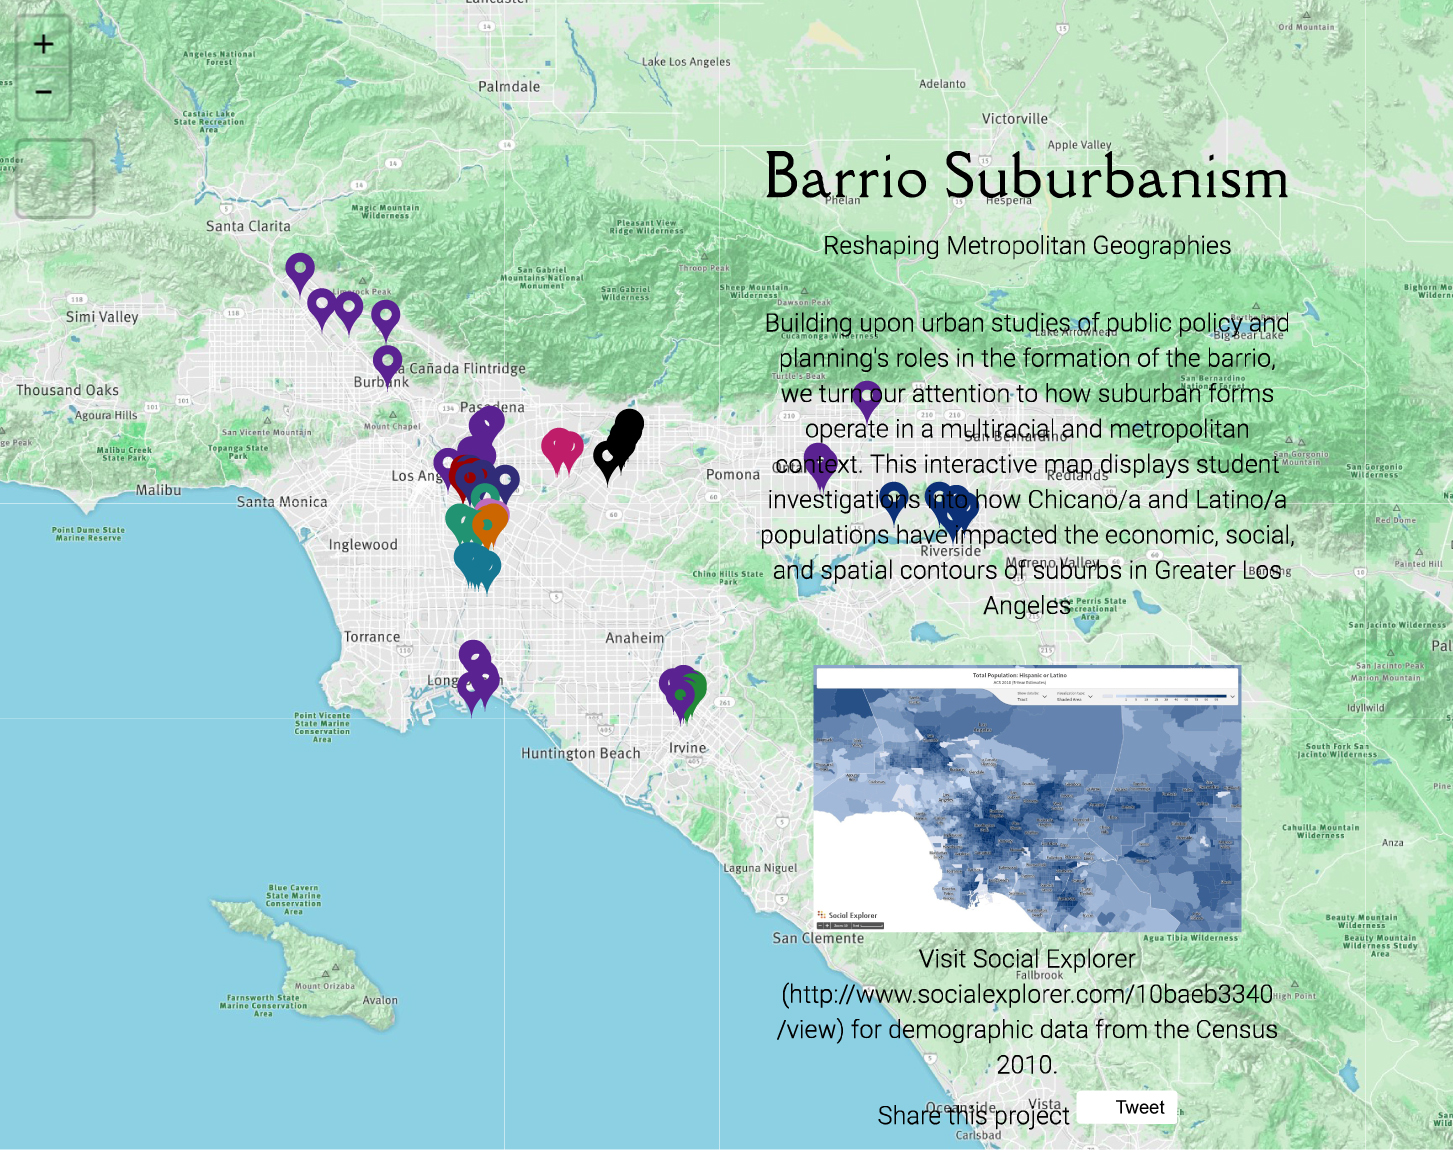 Mapping LAtinx Suburbia Boom California